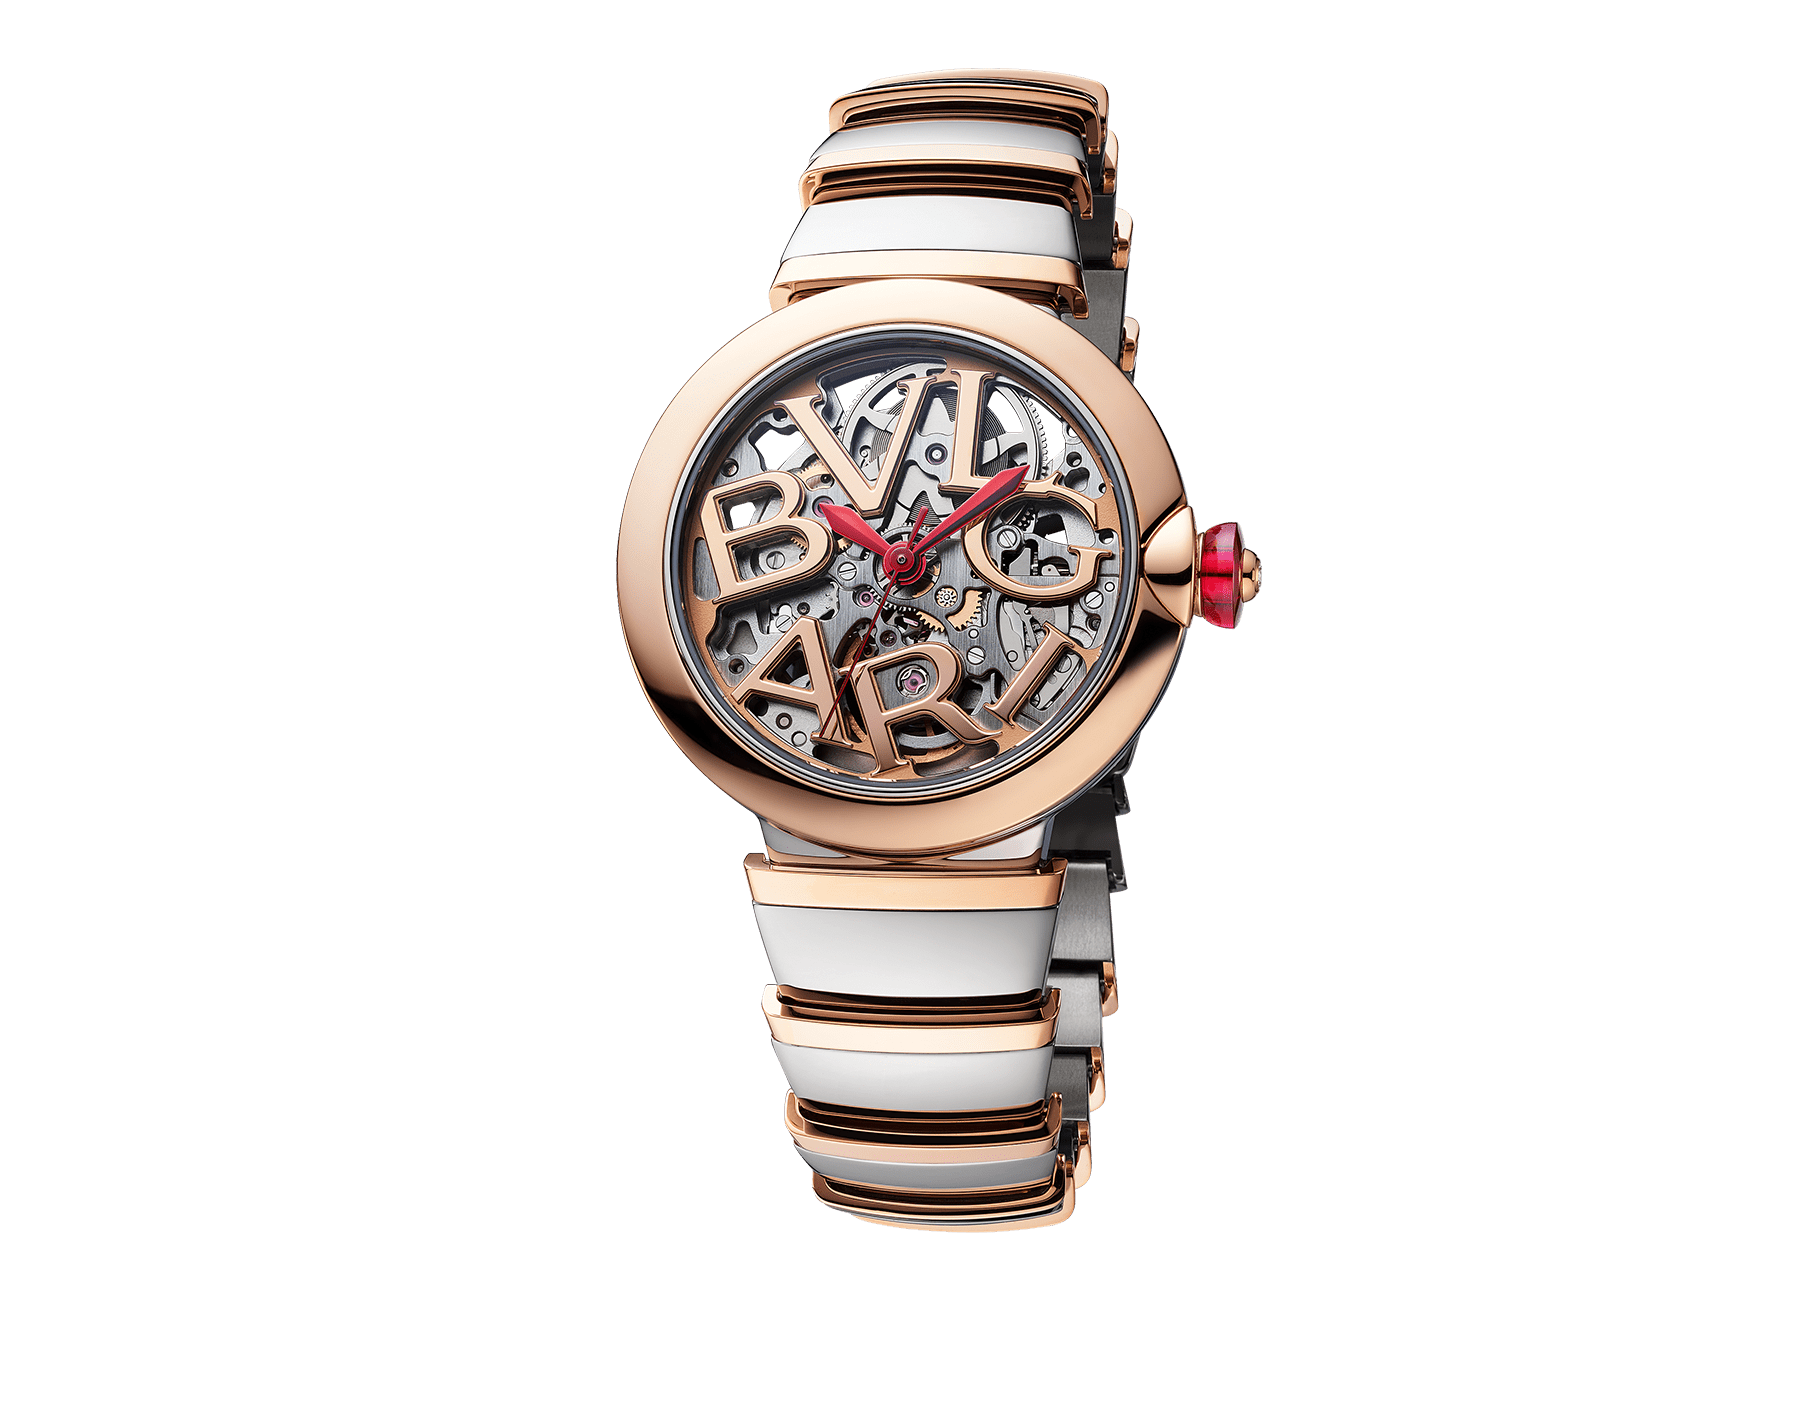 LVCEA Skeleton watch with mechanical manufacture movement, automatic winding, stainless steel and 18 kt rose gold case and bracelet, and openwork BVLGARI logo dial 102878 image 2